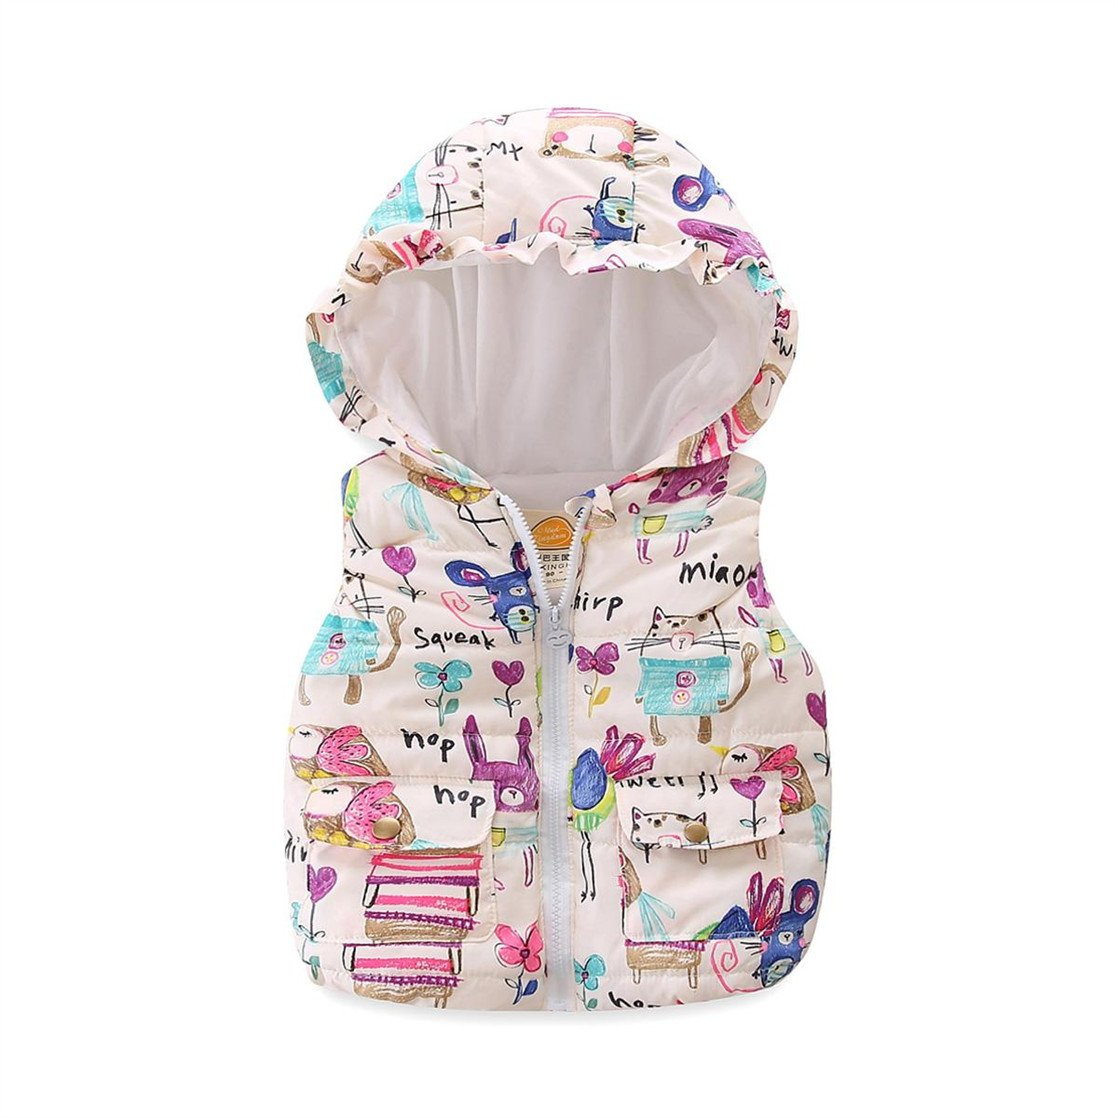 UWESPR Little Girls Cartoon Graffiti Printed Hooded Vests Zipper Outerwear Made in China